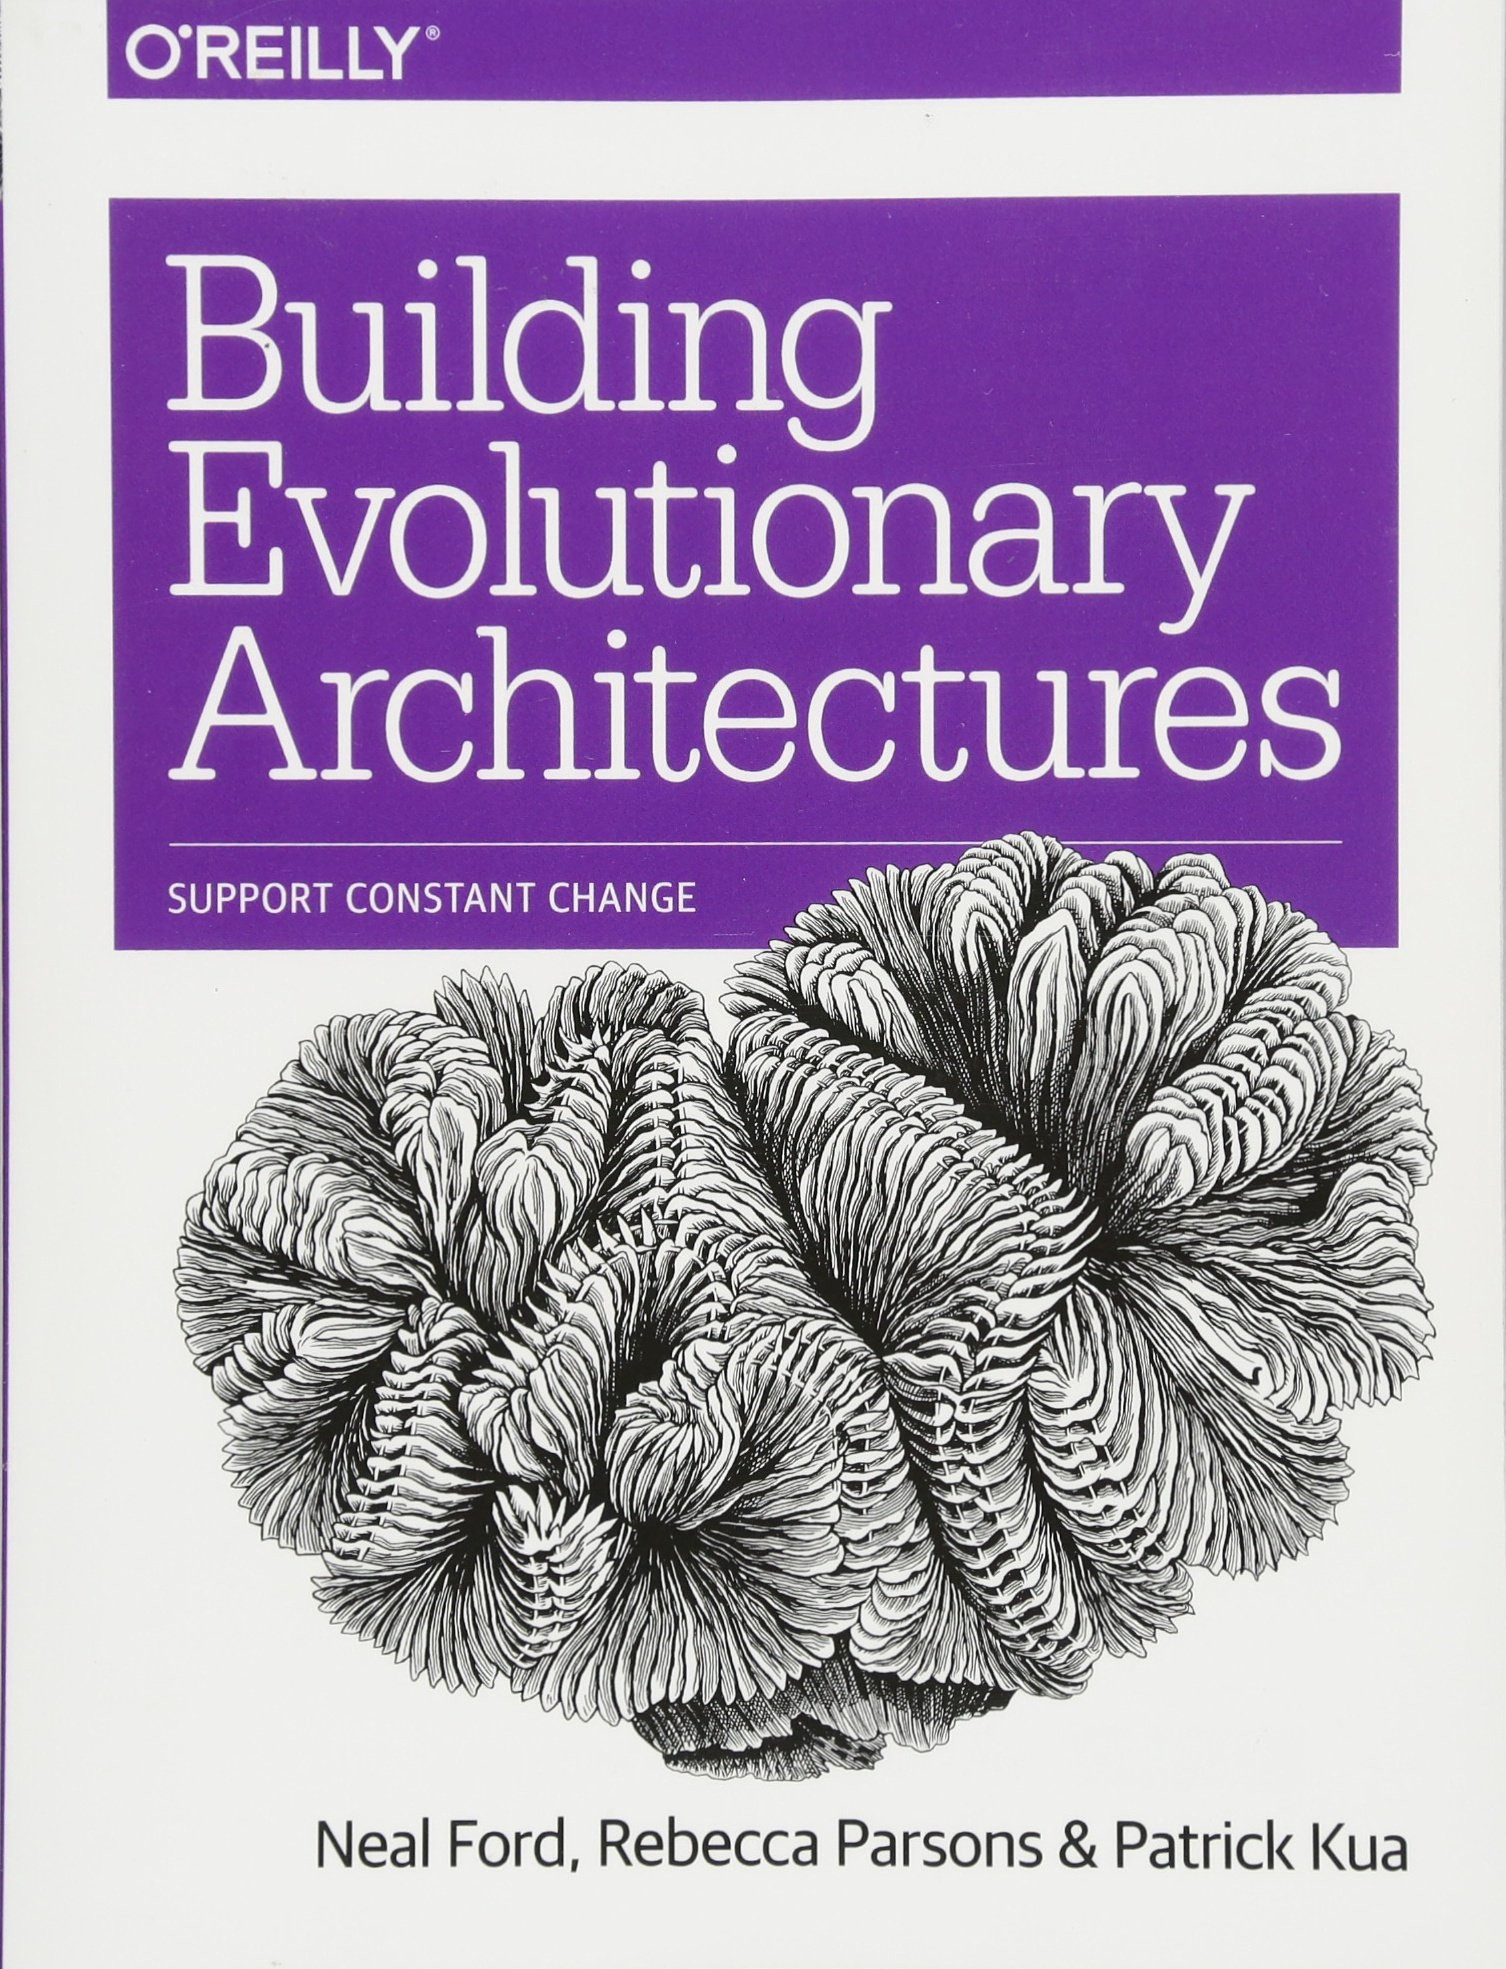 Using Events to build evolutionary architectures